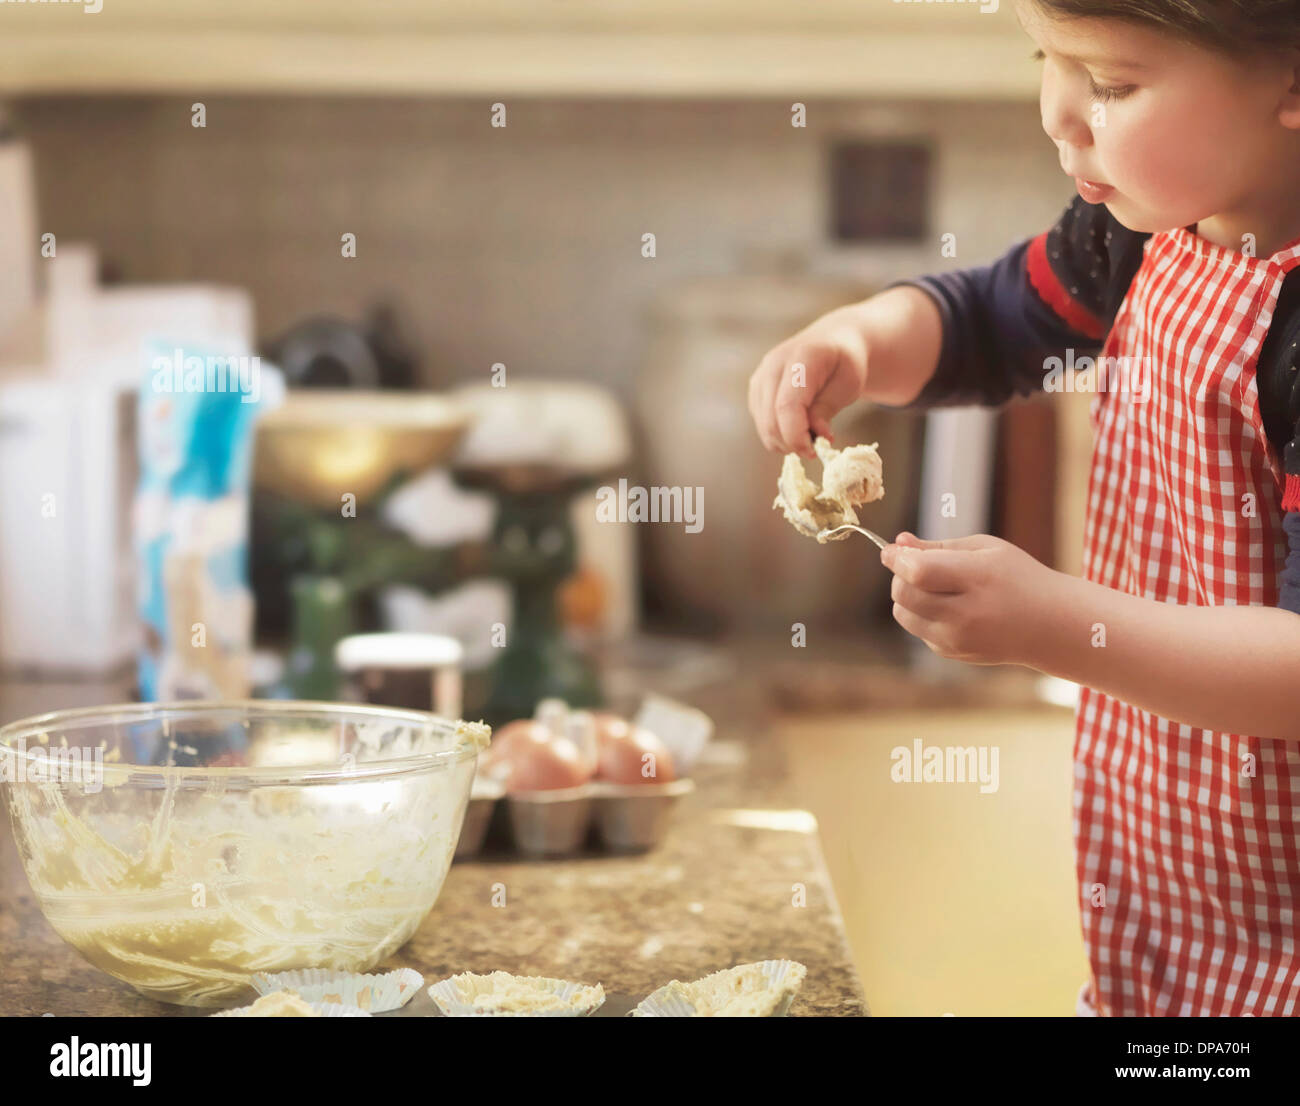 Child holding spoon with cake mix - Stock Image